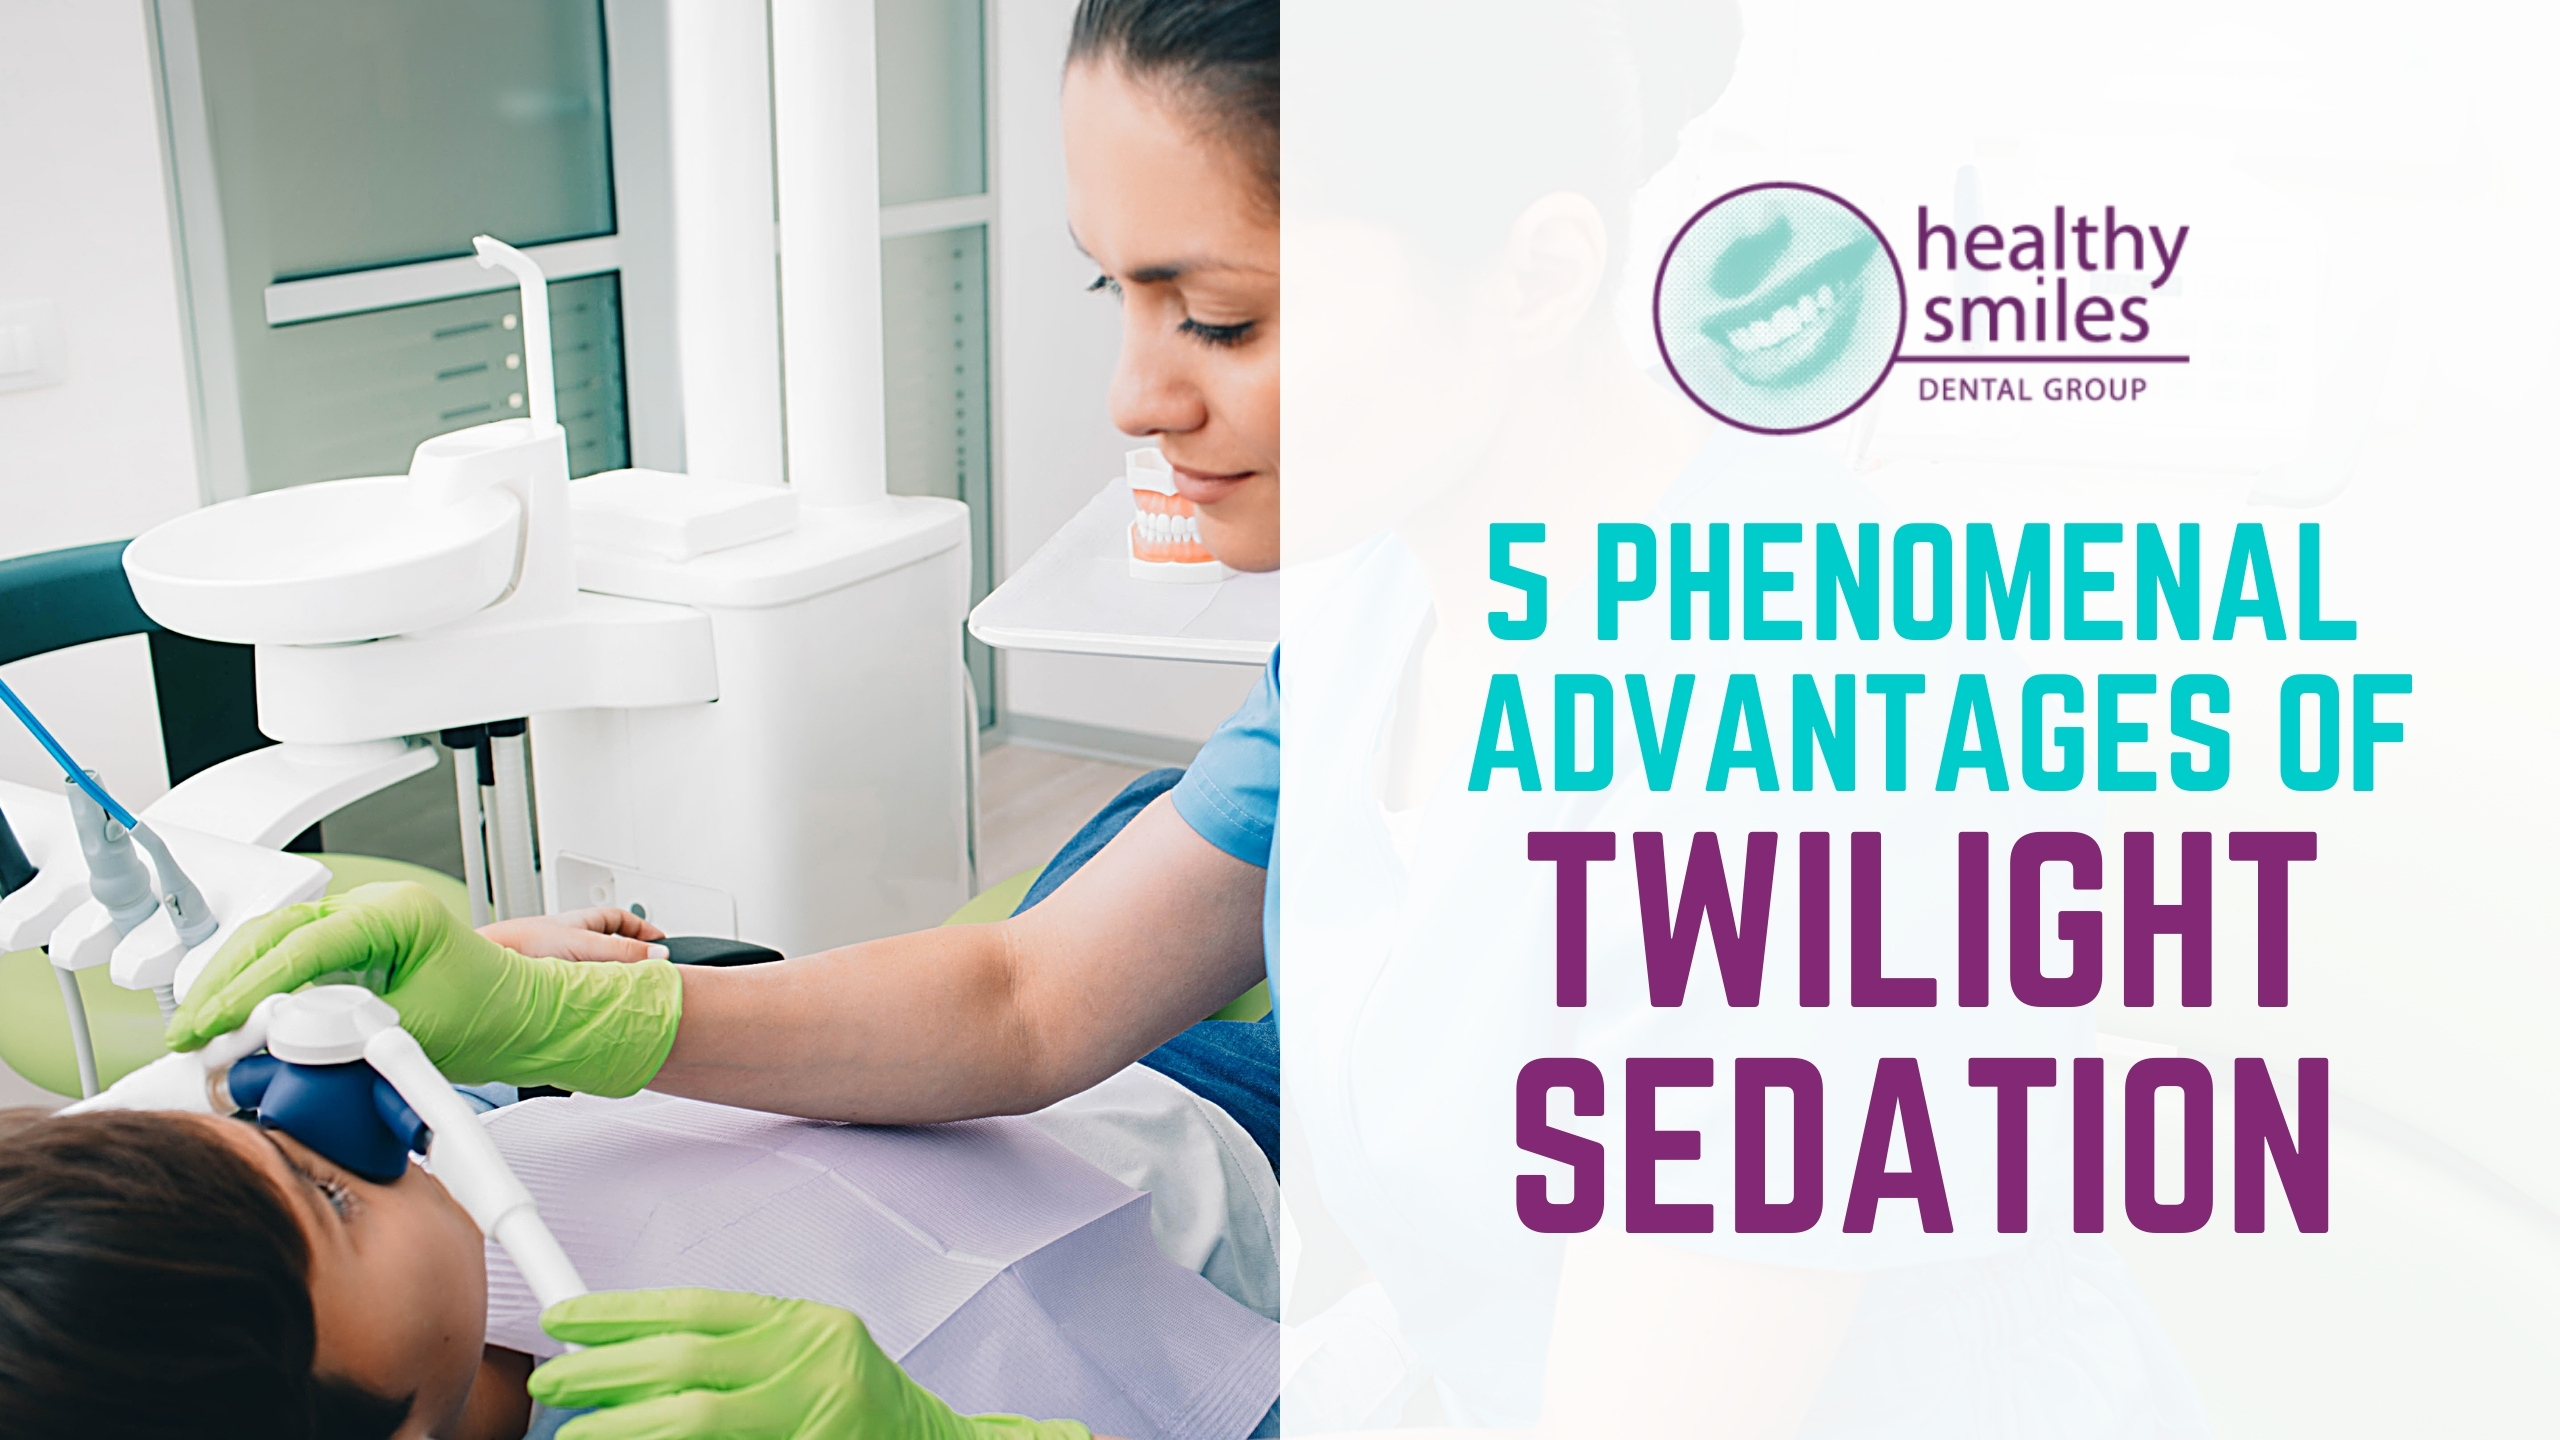 5 Phenomenal Advantages of Twilight Sedation You Should Know